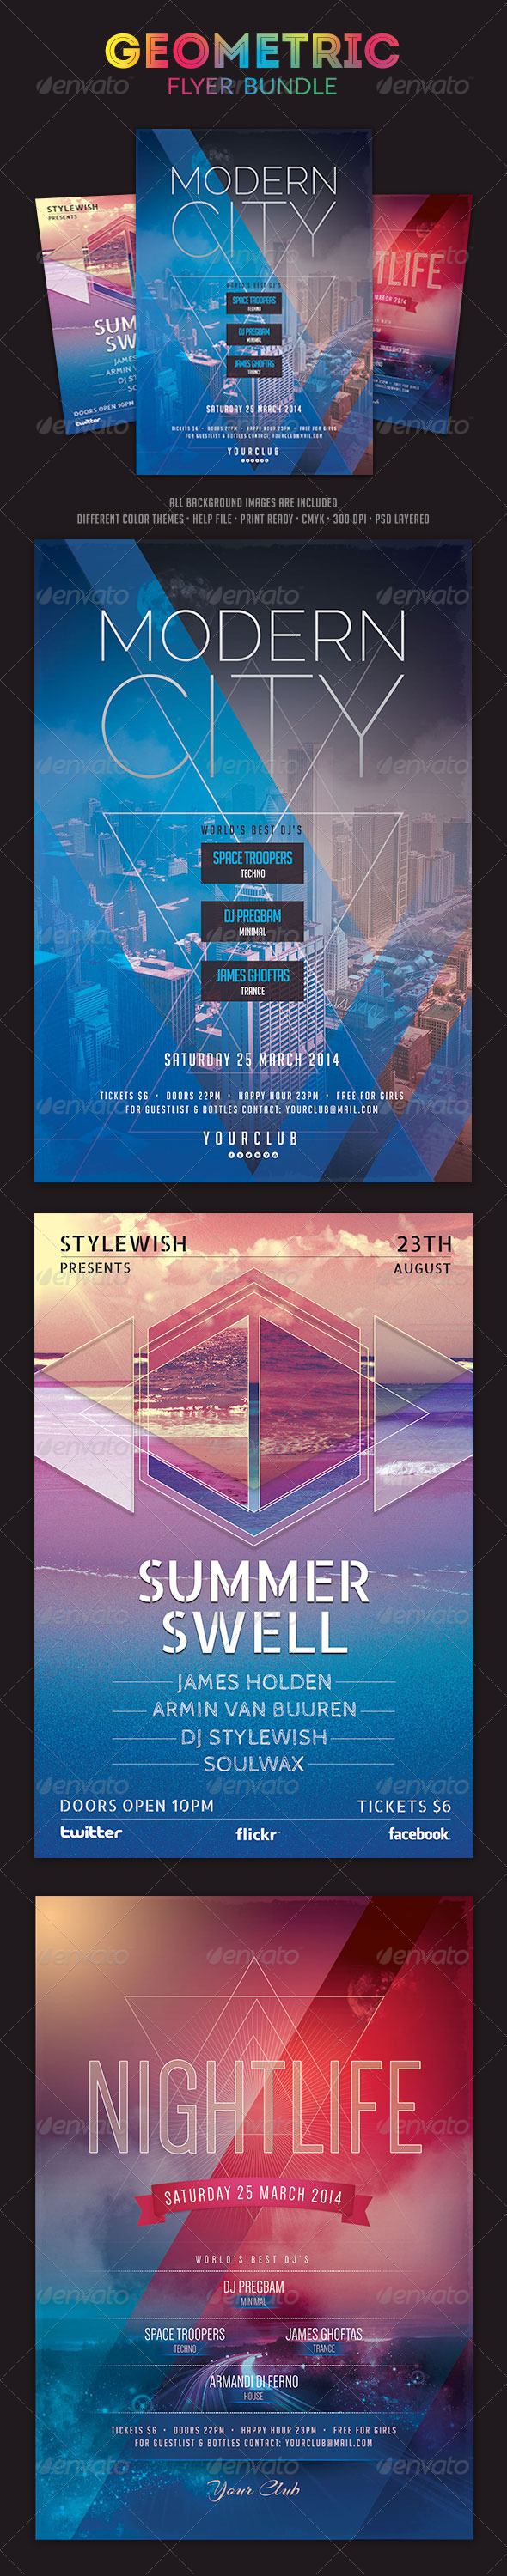 Geometric Flyer Bundle